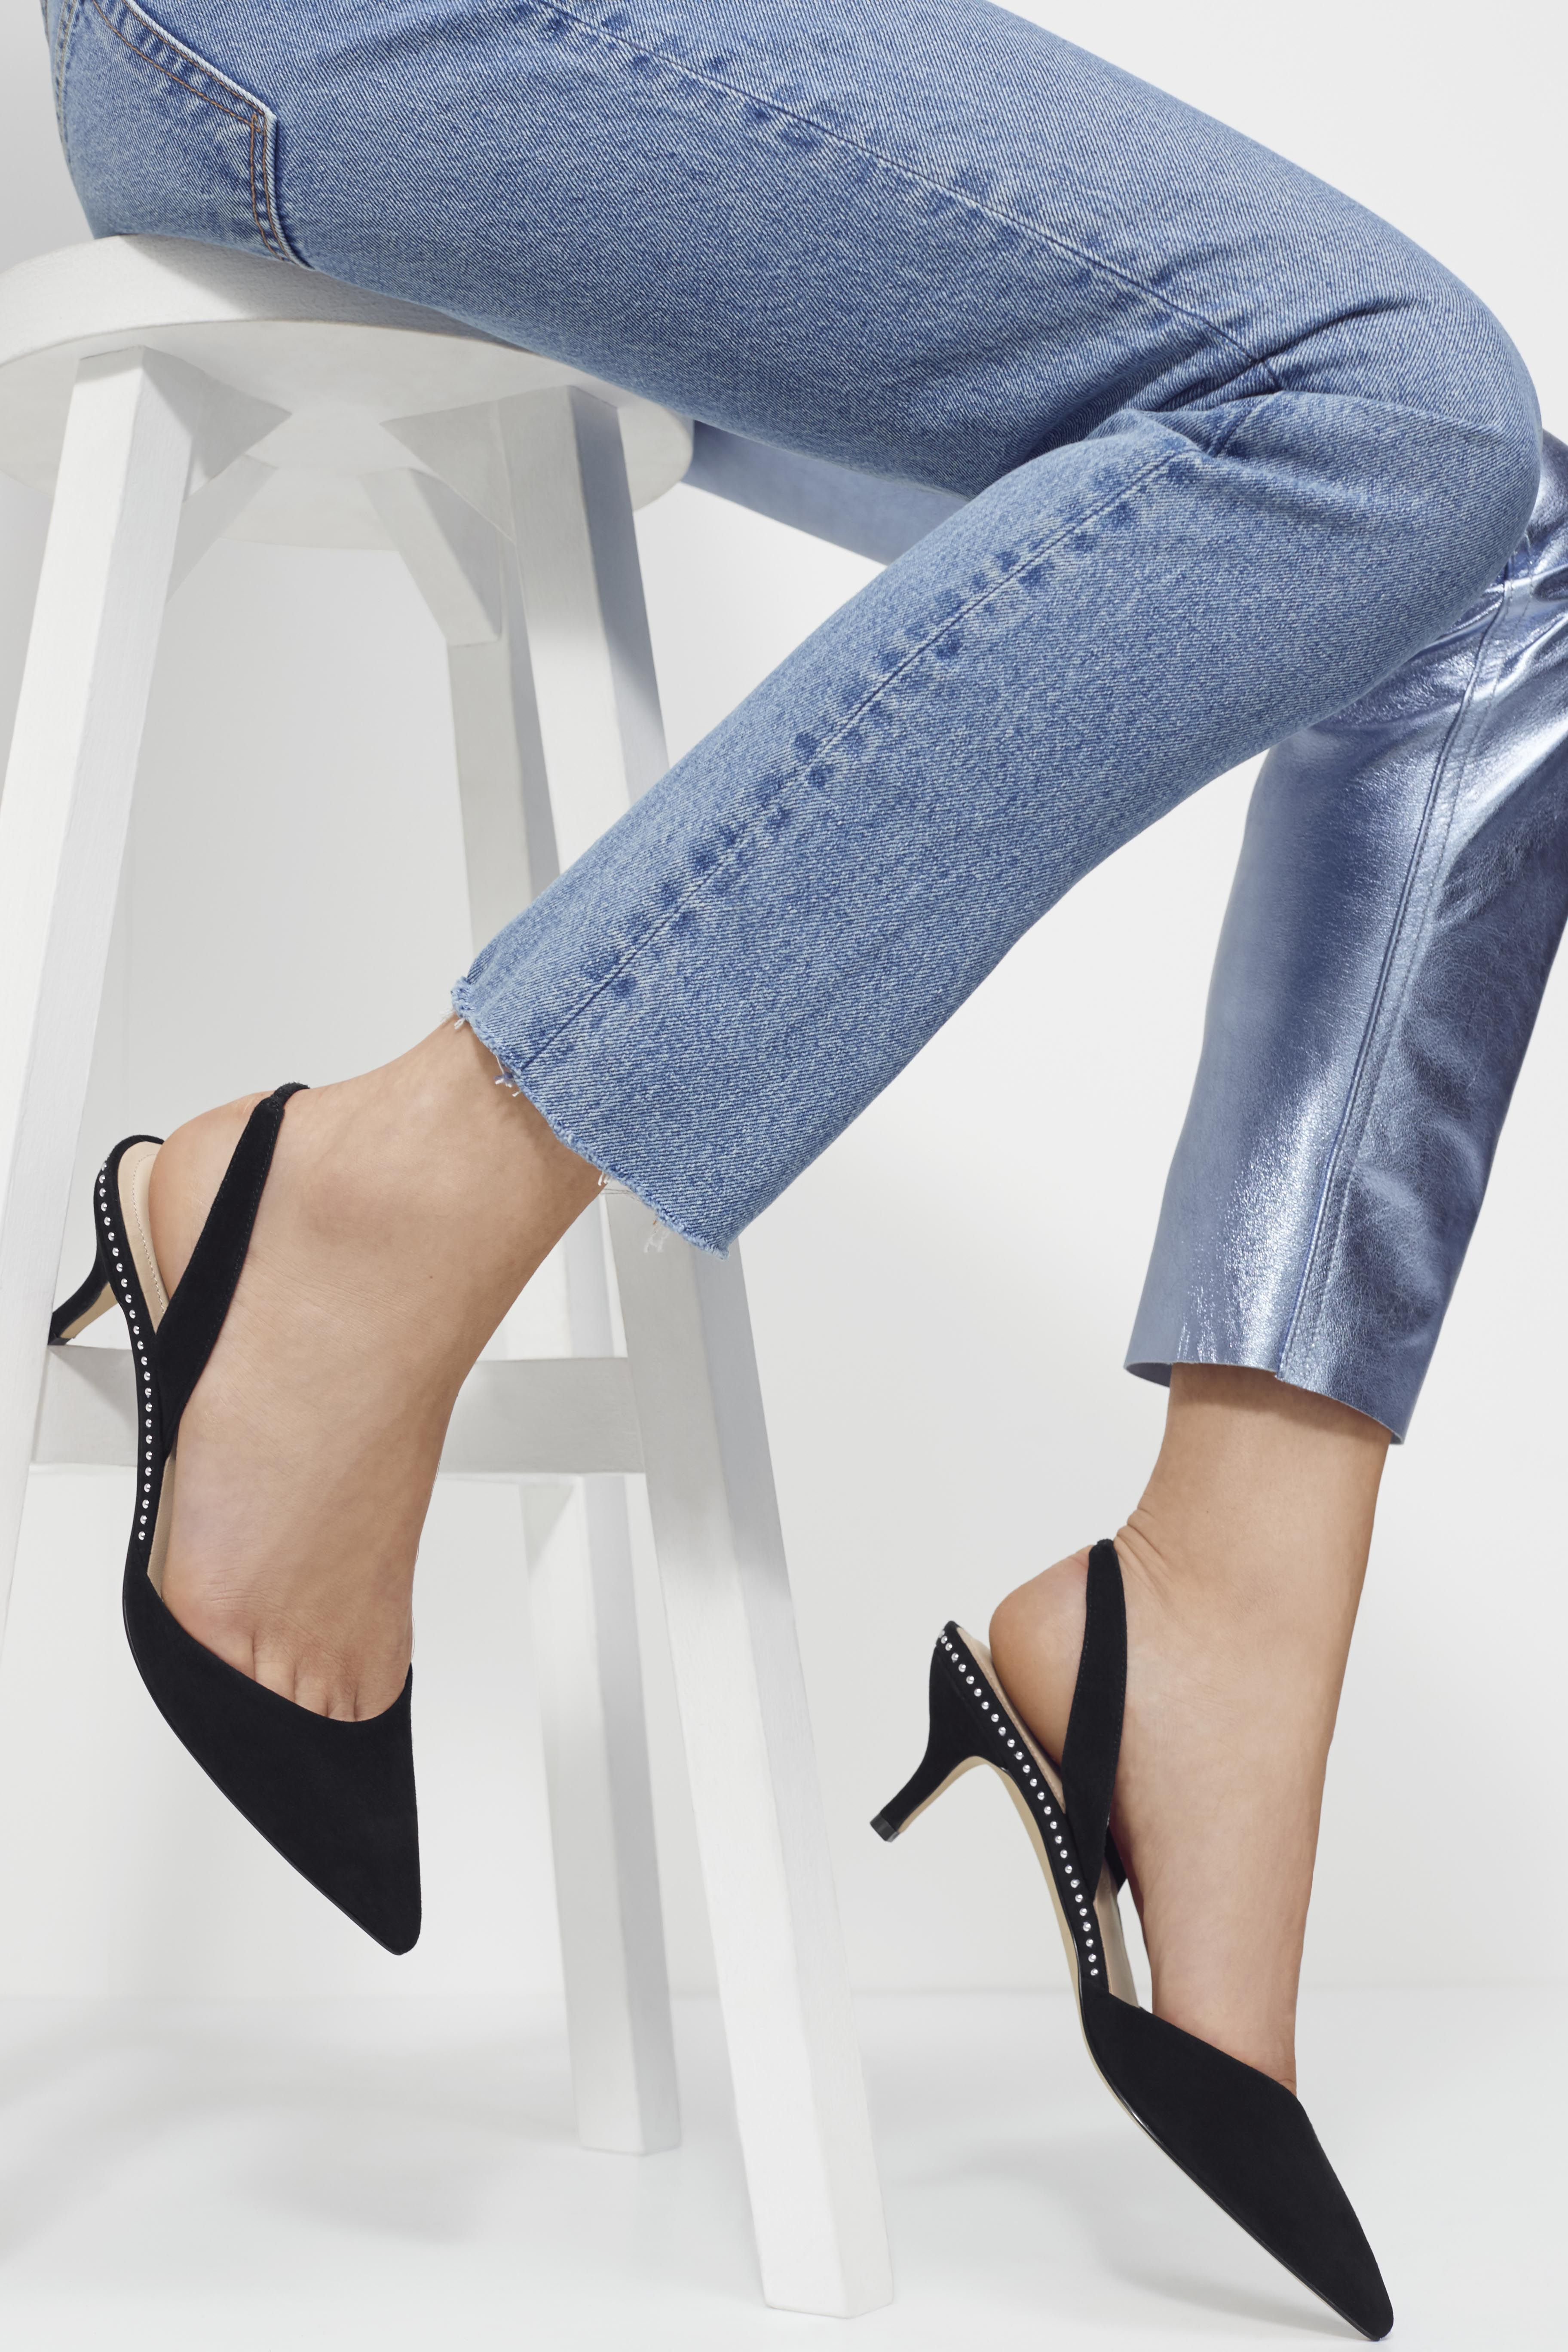 Add This Creranna Kitten Heel To Your Rotation For Days That Go From Desk To Dinner Heels Women Shoes Kitten Heel Shoes